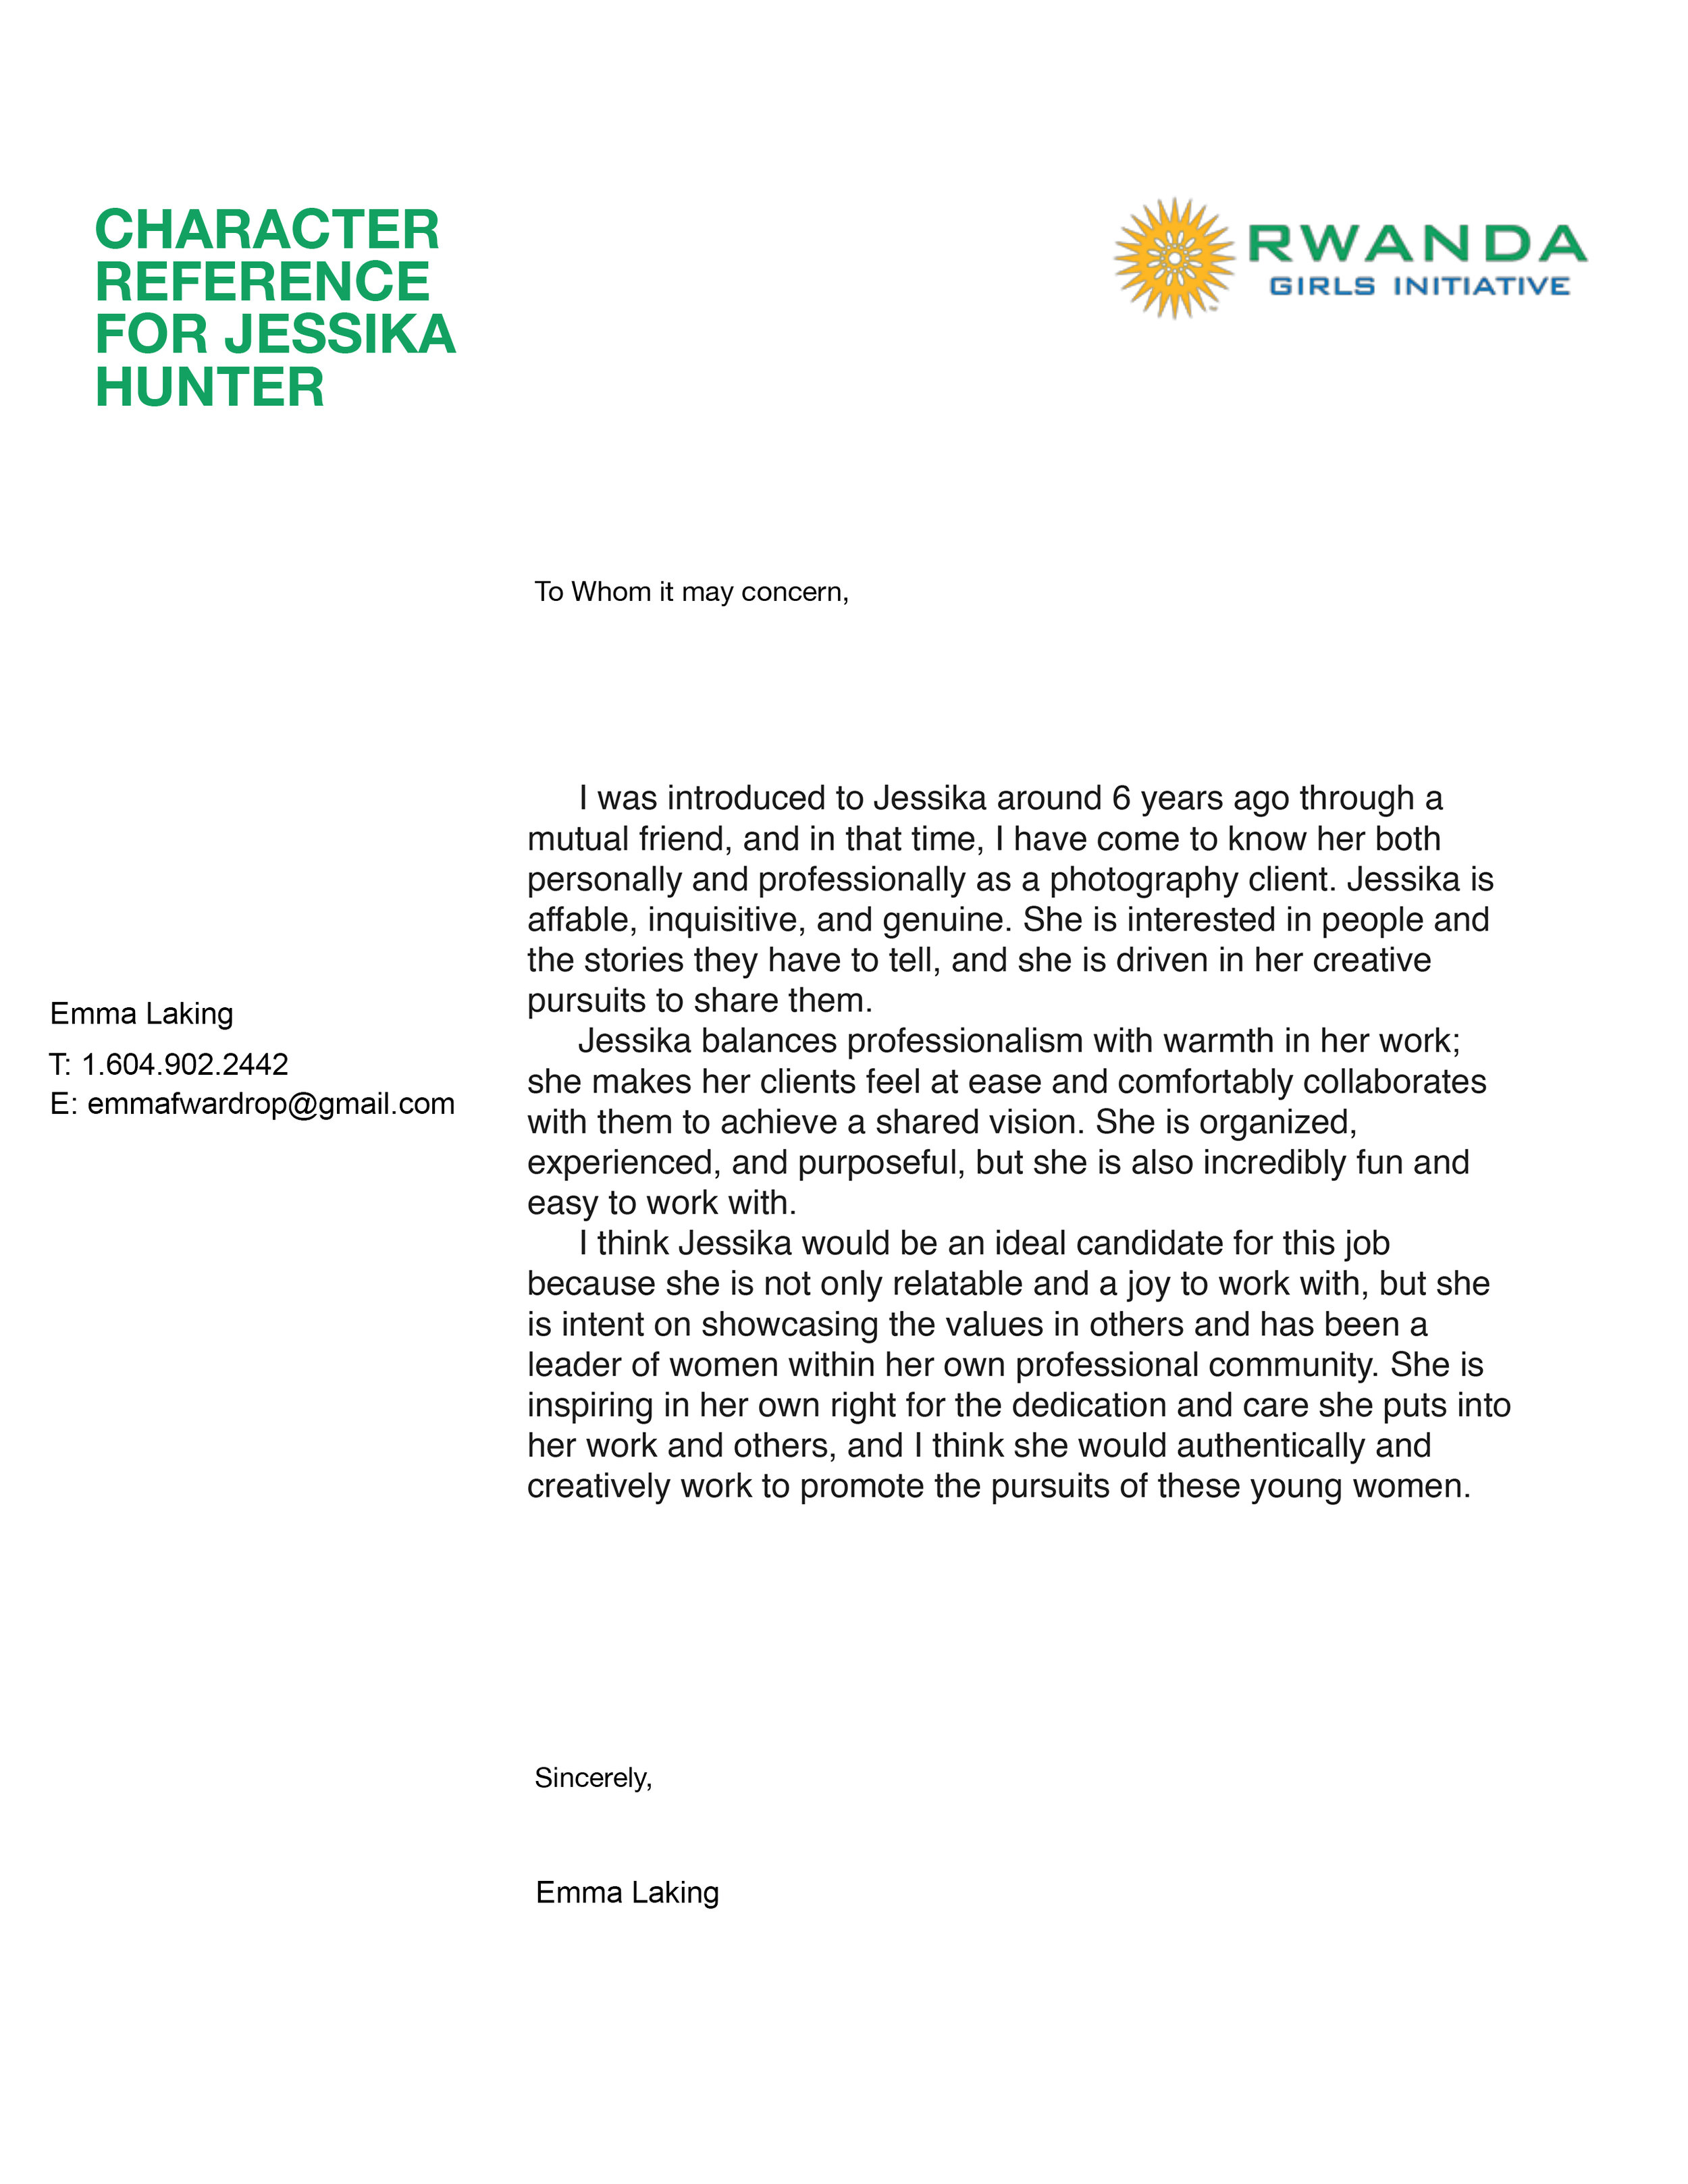 4-Emma Reference letter for Jessika Hunter.jpg